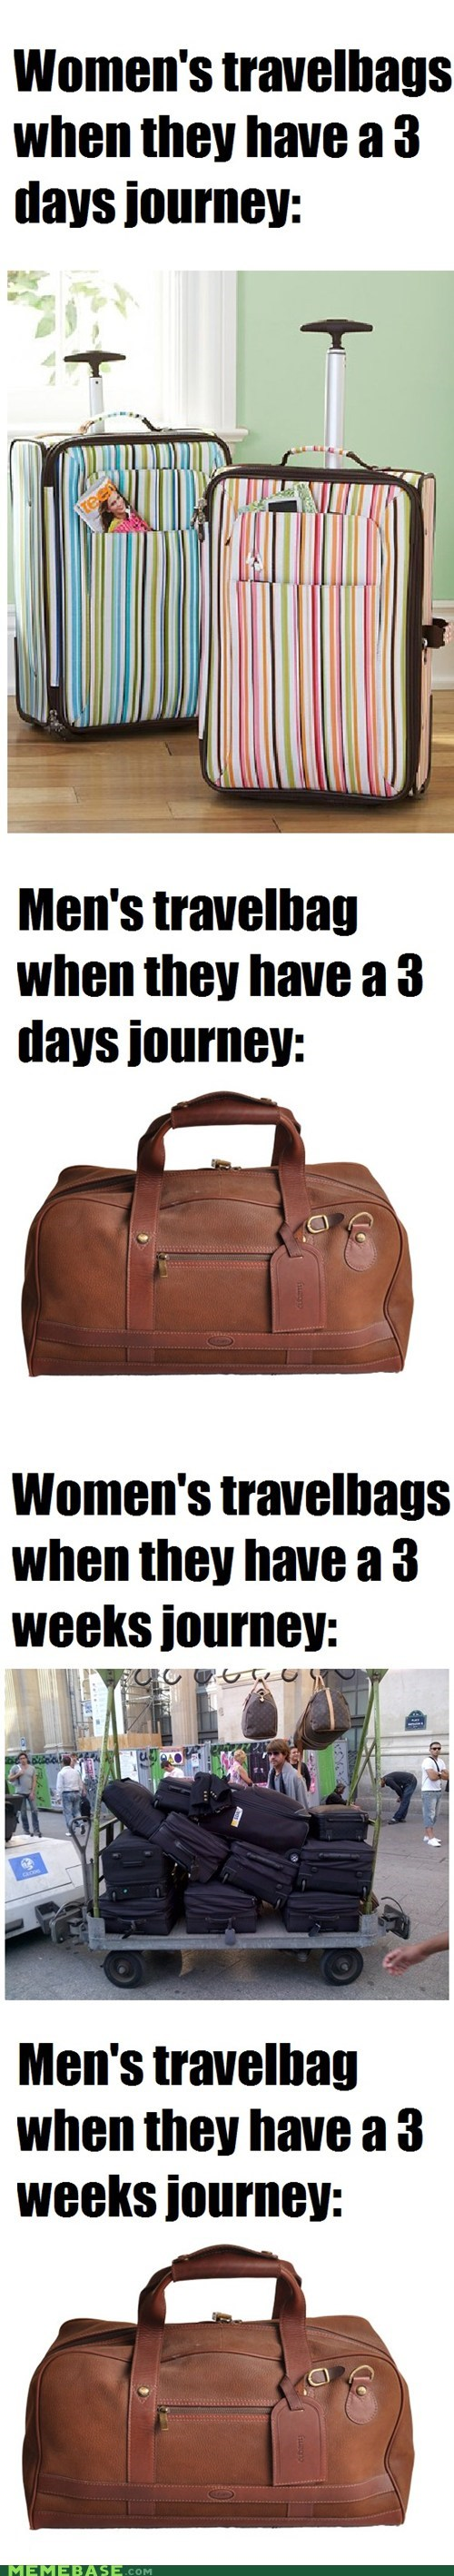 The Travelbags Enigma